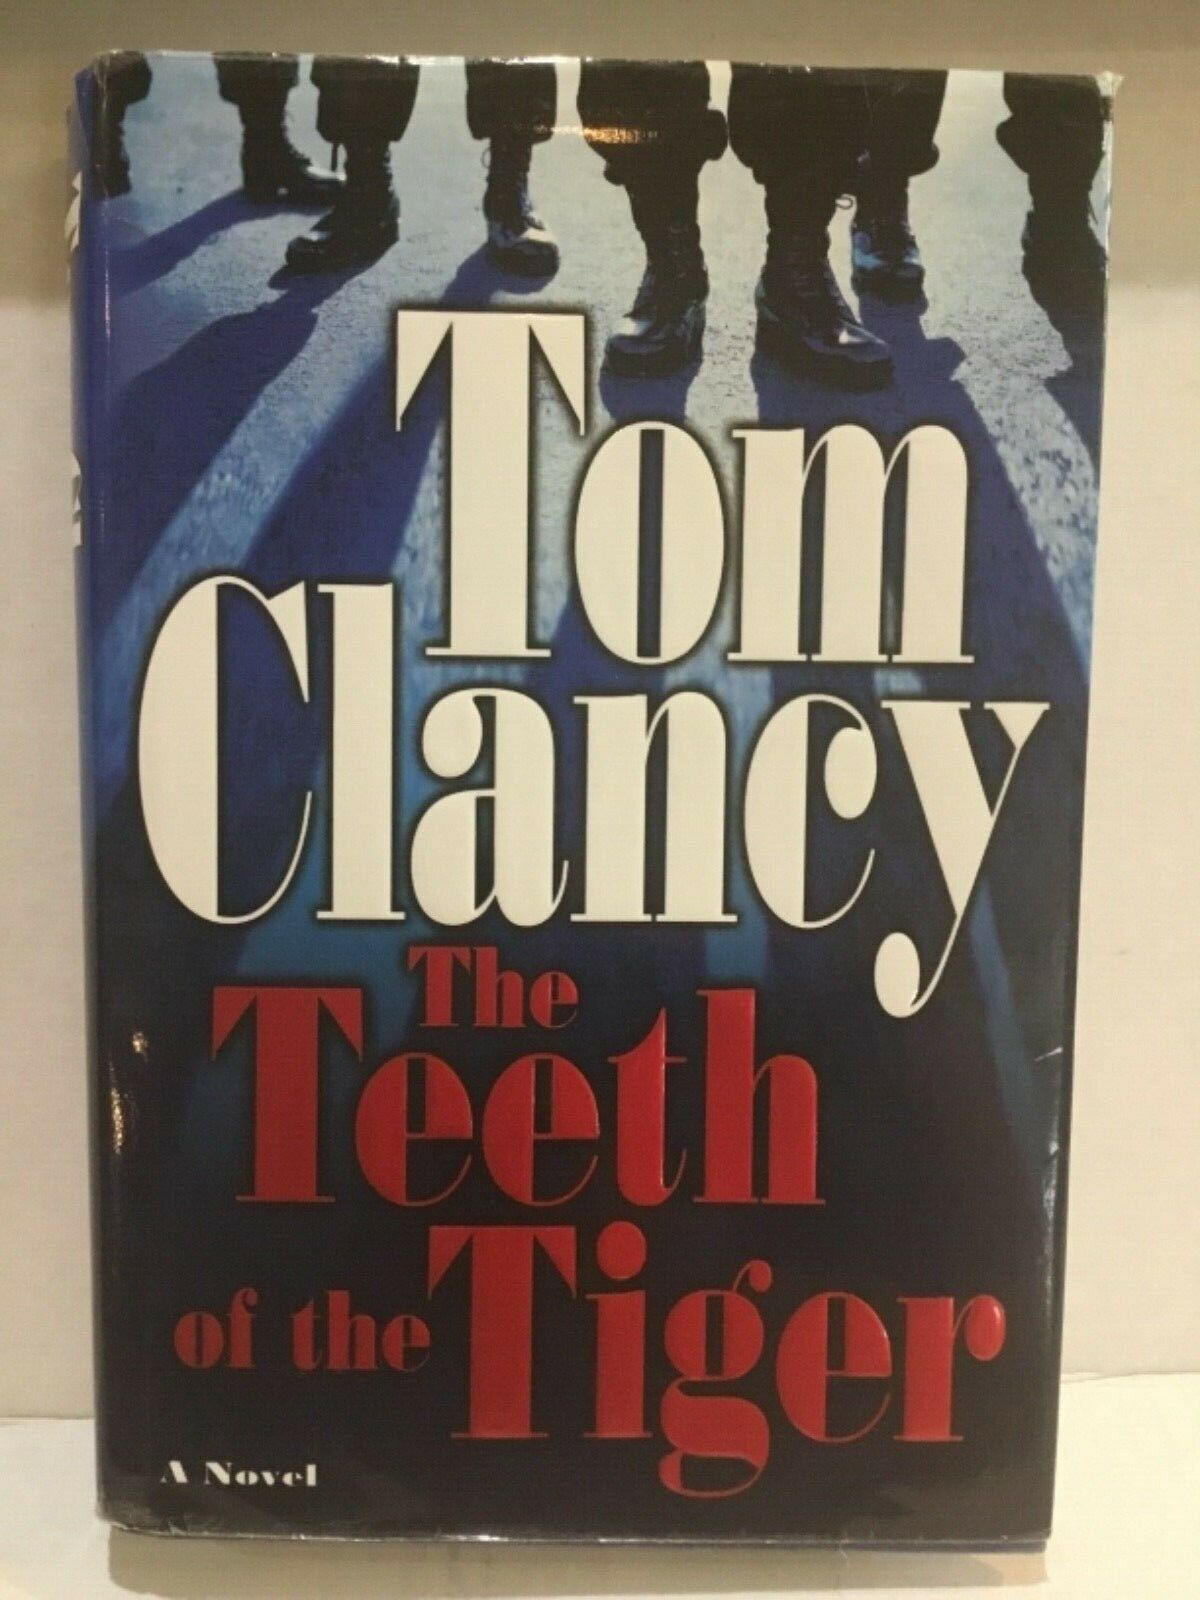 2003 The Teeth of the Tiger, Tom Clancy